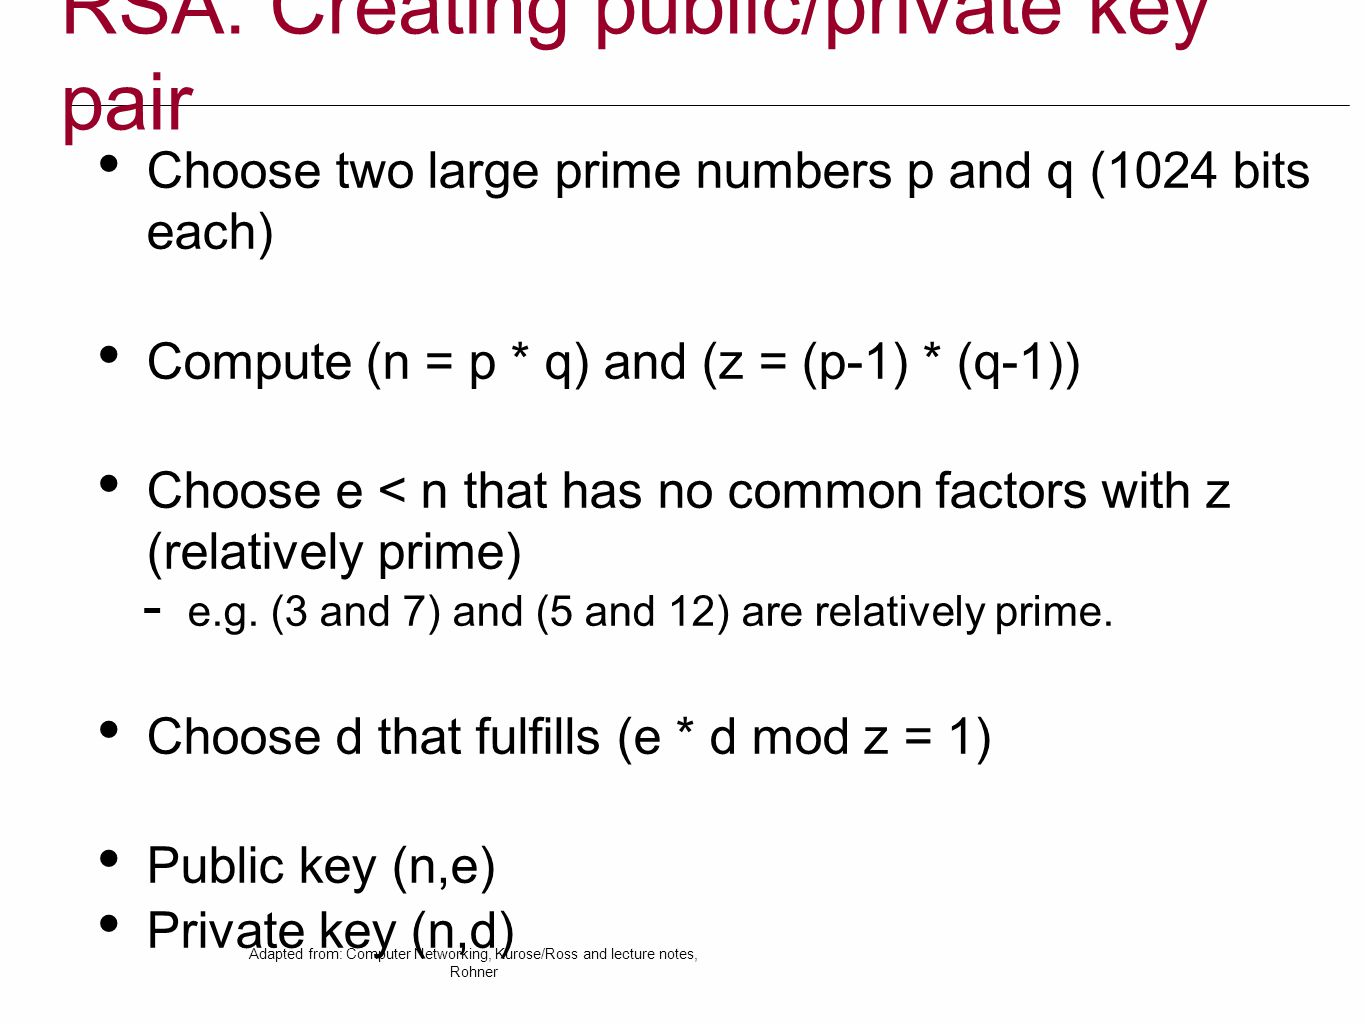 RSA: Creating public/private key pair Choose two large prime numbers p and q (1024 bits each) Compute (n = p * q) and (z = (p-1) * (q-1)) Choose e < n that has no common factors with z (relatively prime)  e.g.